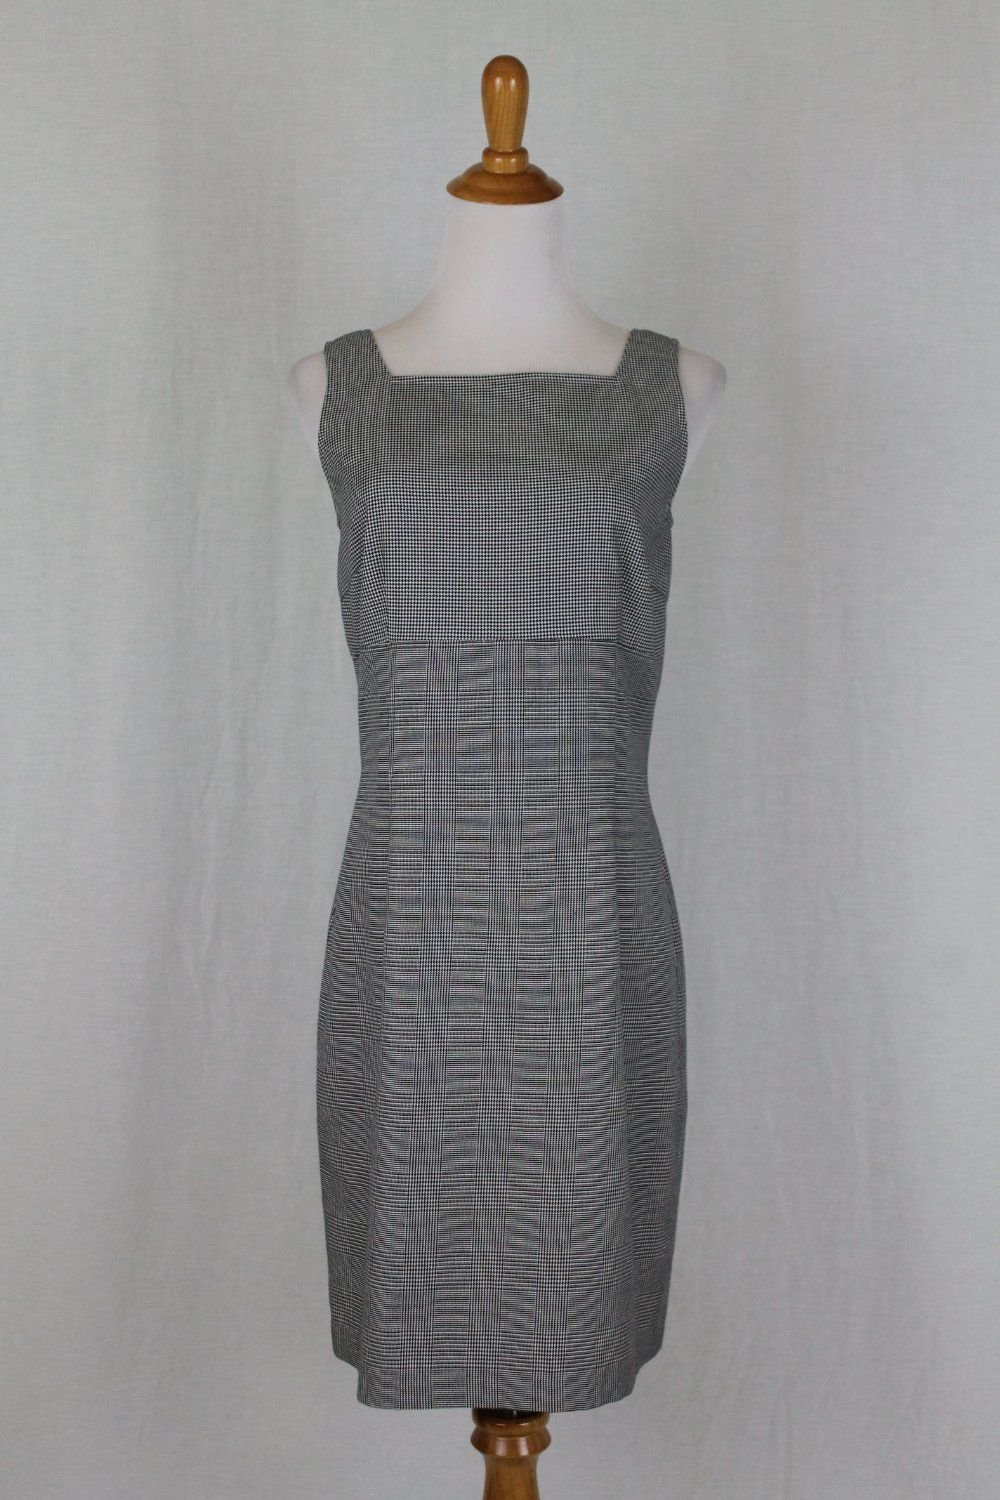 Vintage Tommy Hillfiger 1990's Sleeveless Cotton Houndstooth Sheath Dress 6 S